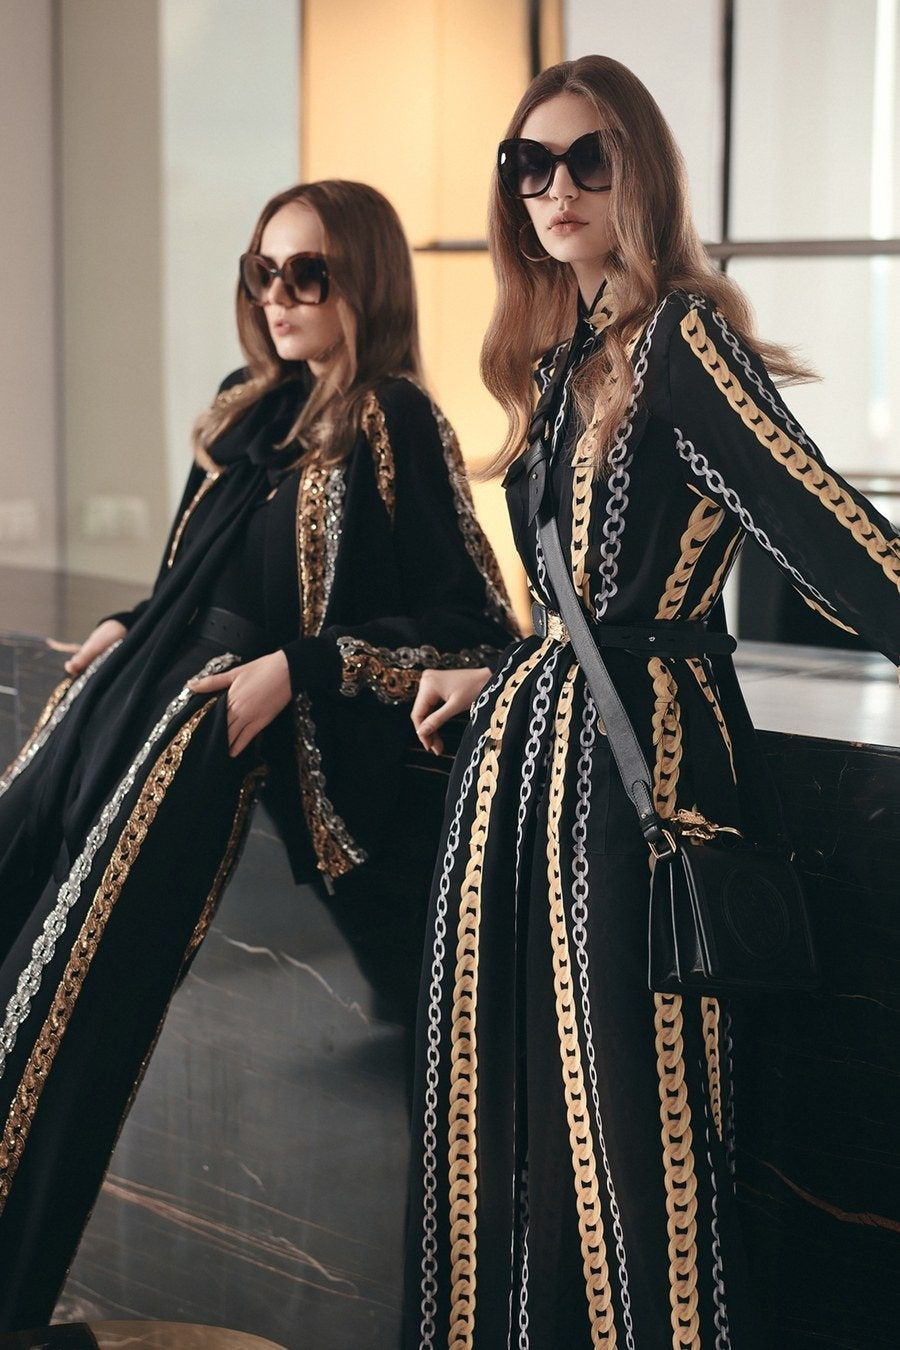 Elie Saab Pre-Fall 2019 Fashion Show -  Elie Saab Pre-Fall 2019 collection, runway looks, beauty, models, and reviews.  - #ChristianDior #Elie #fashion #PreFall #ReadyToWear #RunwayFashion #Saab #Show #ZacPosen